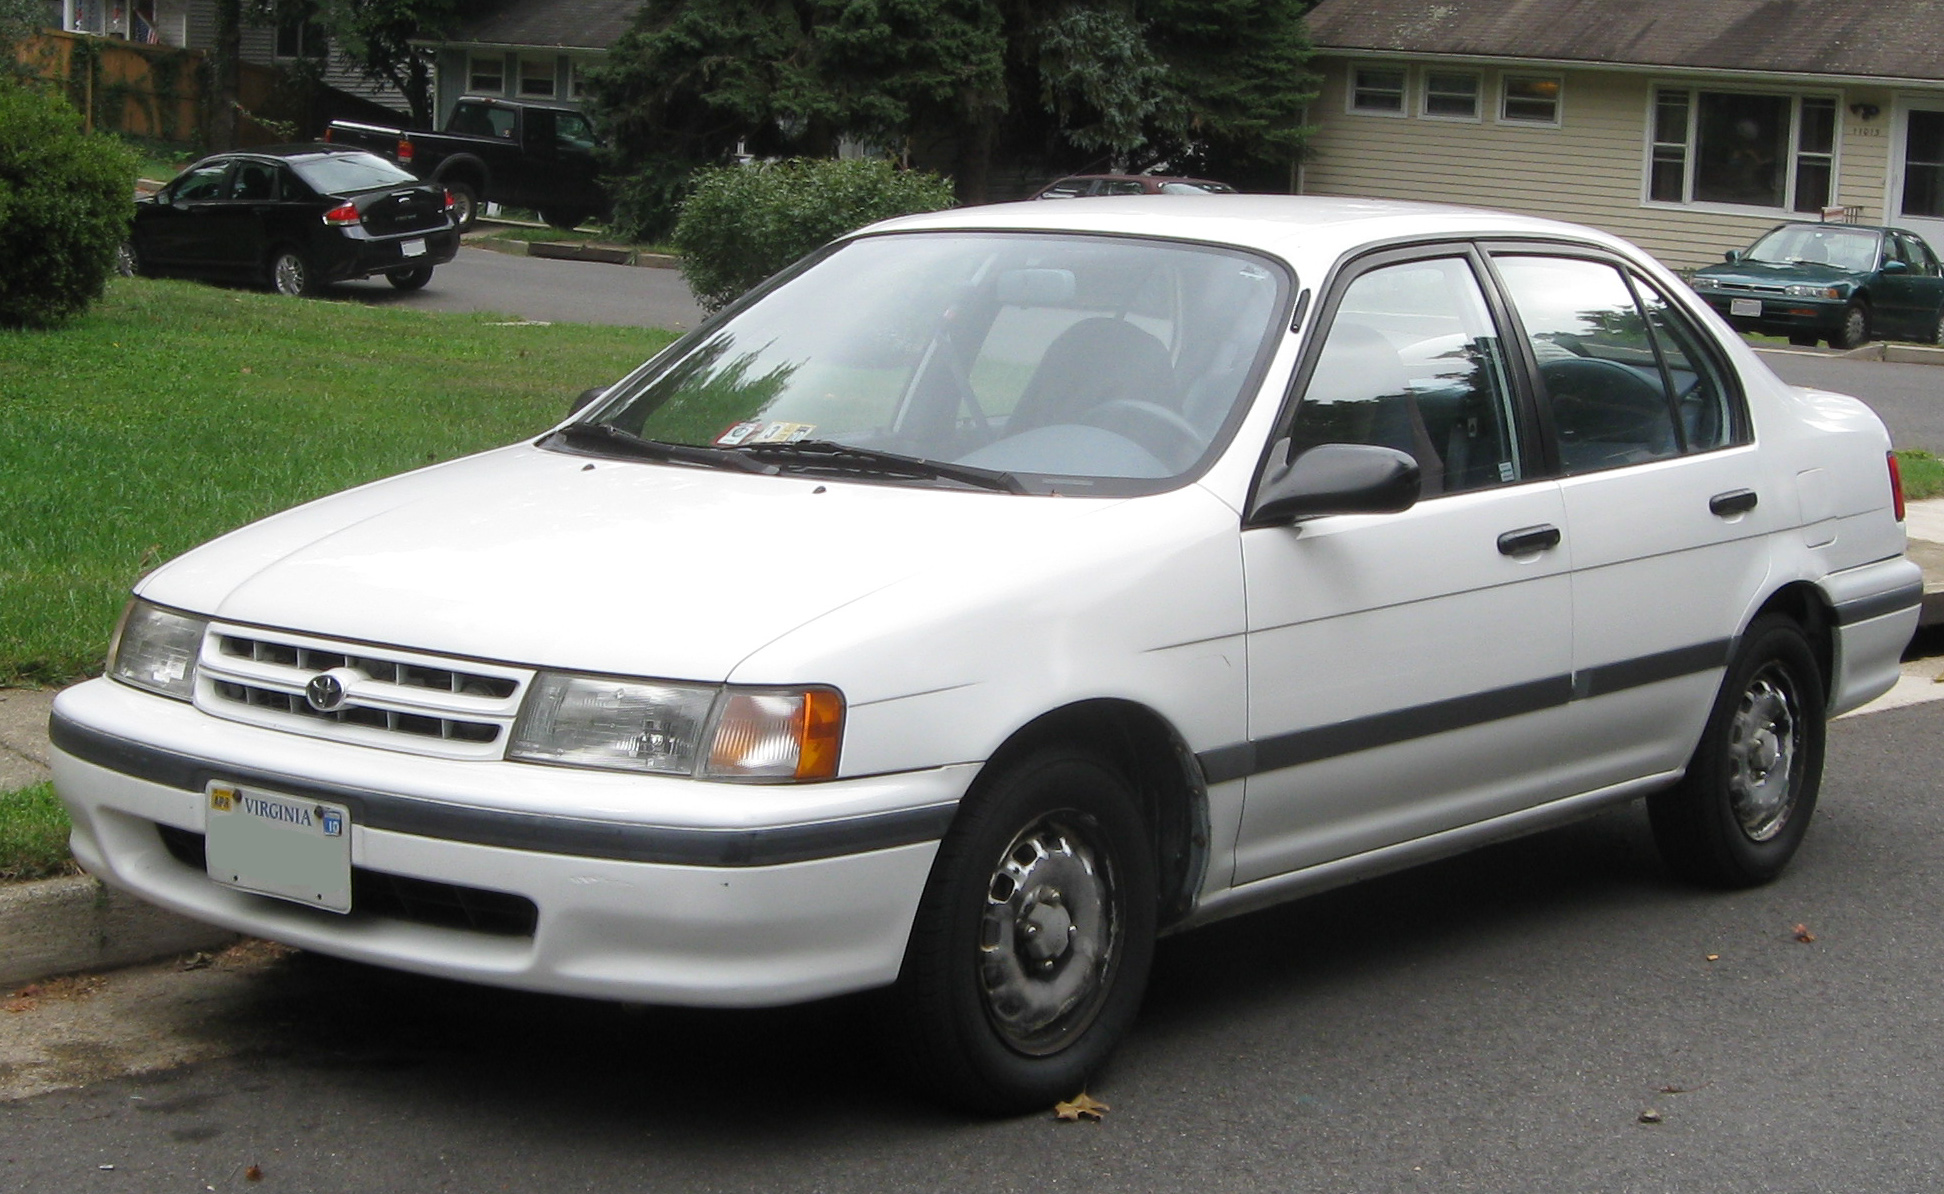 https://upload.wikimedia.org/wikipedia/commons/8/81/Toyota_Tercel_sedan_--_09-07-2009.jpg